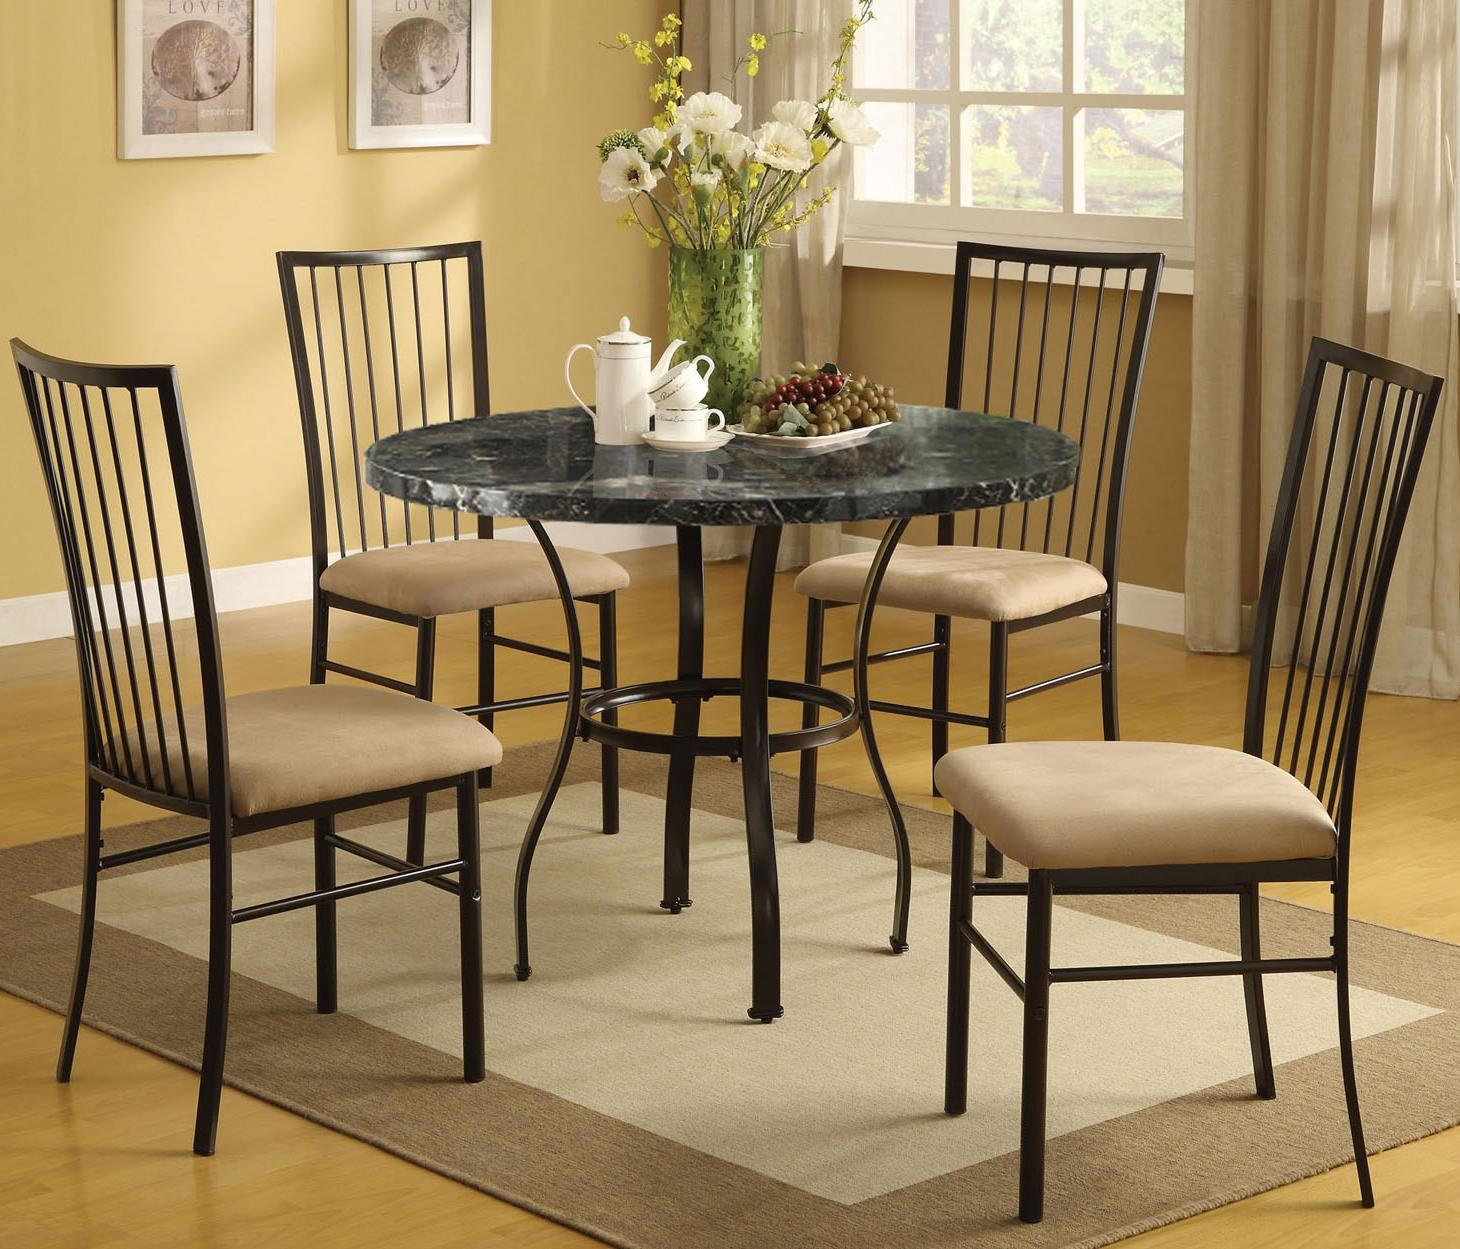 Acme Furniture Darell 5 Piece Faux Marble Dining Set With Upholstered Seats